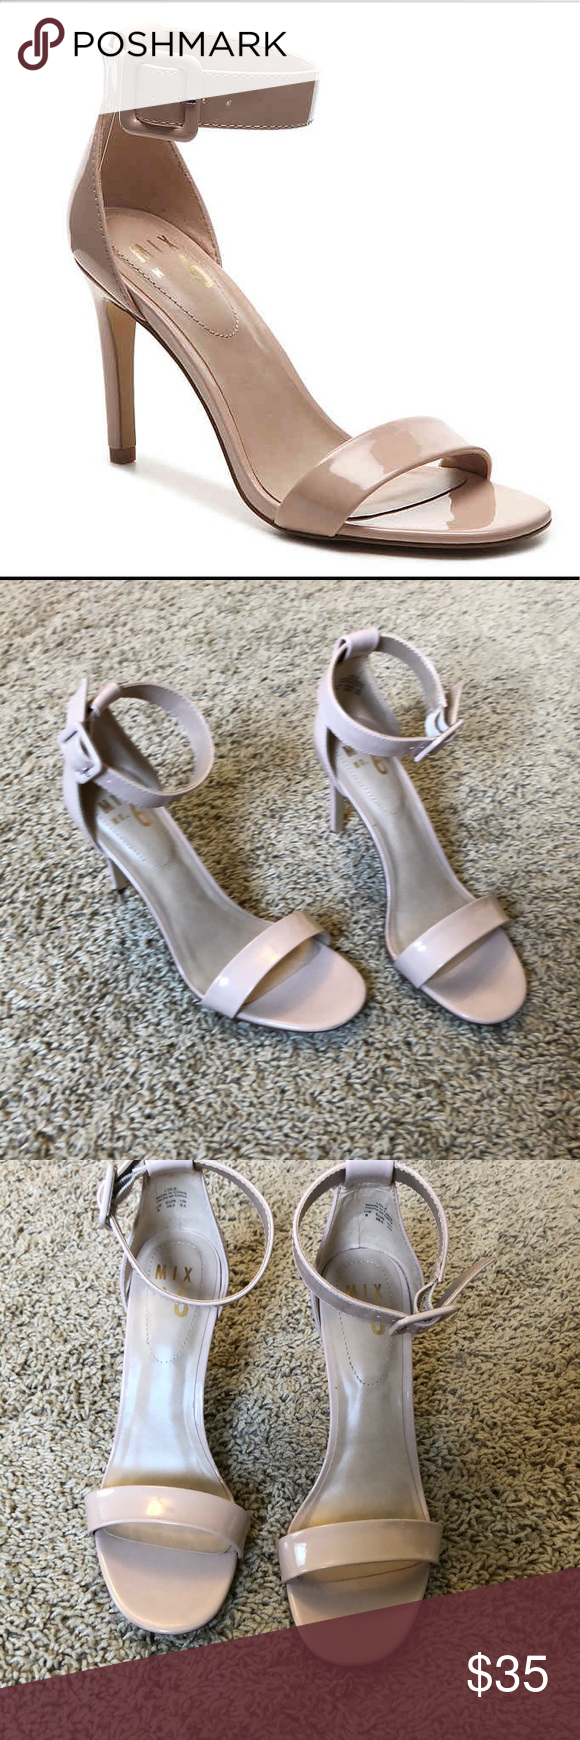 4c6b87240222 Mix no 6 Lole heels 👠 Adjustable buckle ankle strap Round open toe  cushioned footbed 3 1 2 inch heel Color is beige. New in box Mix No. 6  Shoes Heels